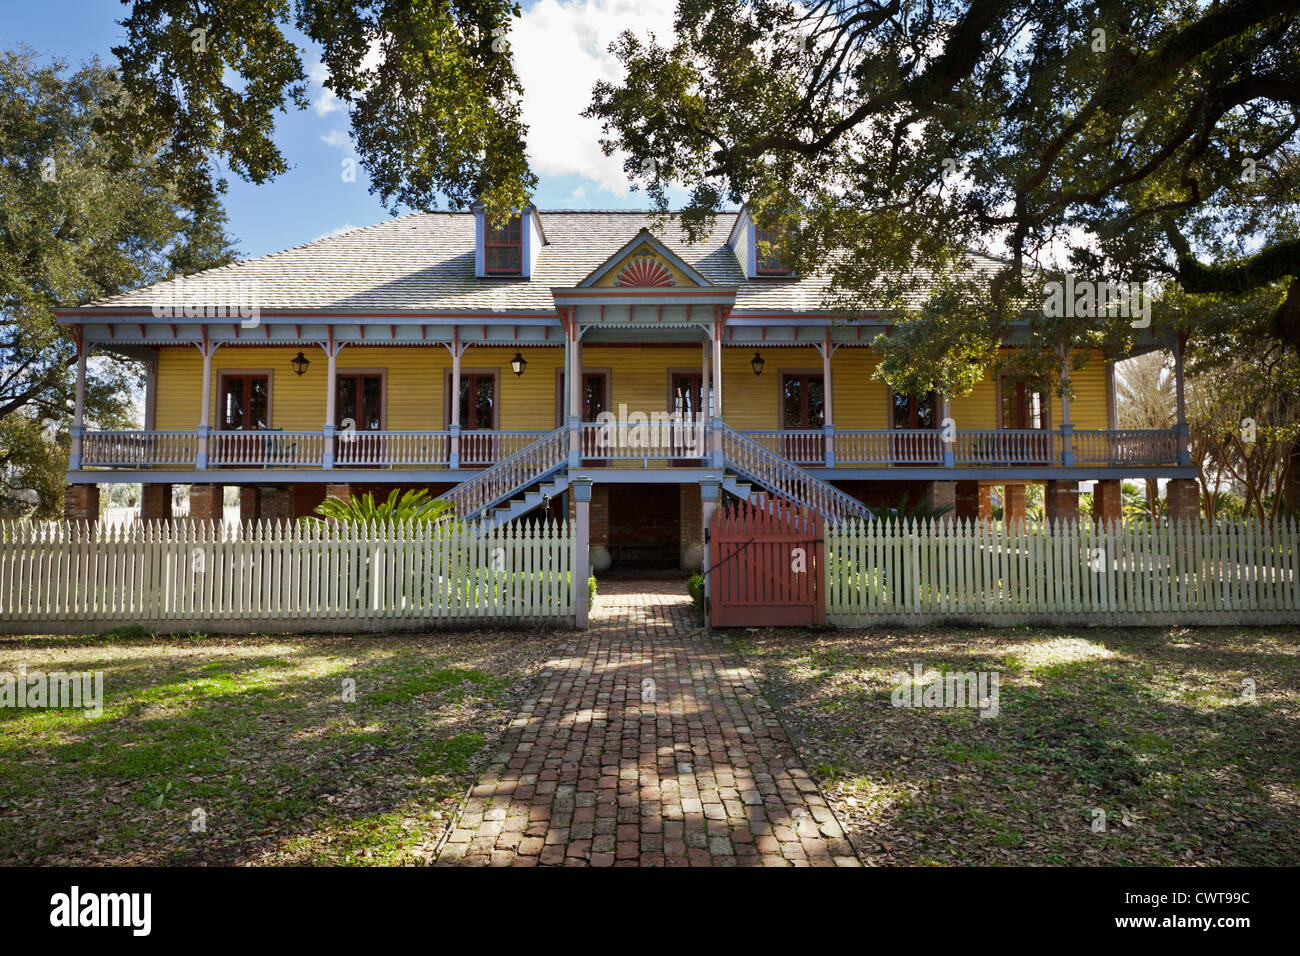 Laura Plantation, River Road, north of New Orleans, Louisiana, successfully managed by Creole women - Stock Image